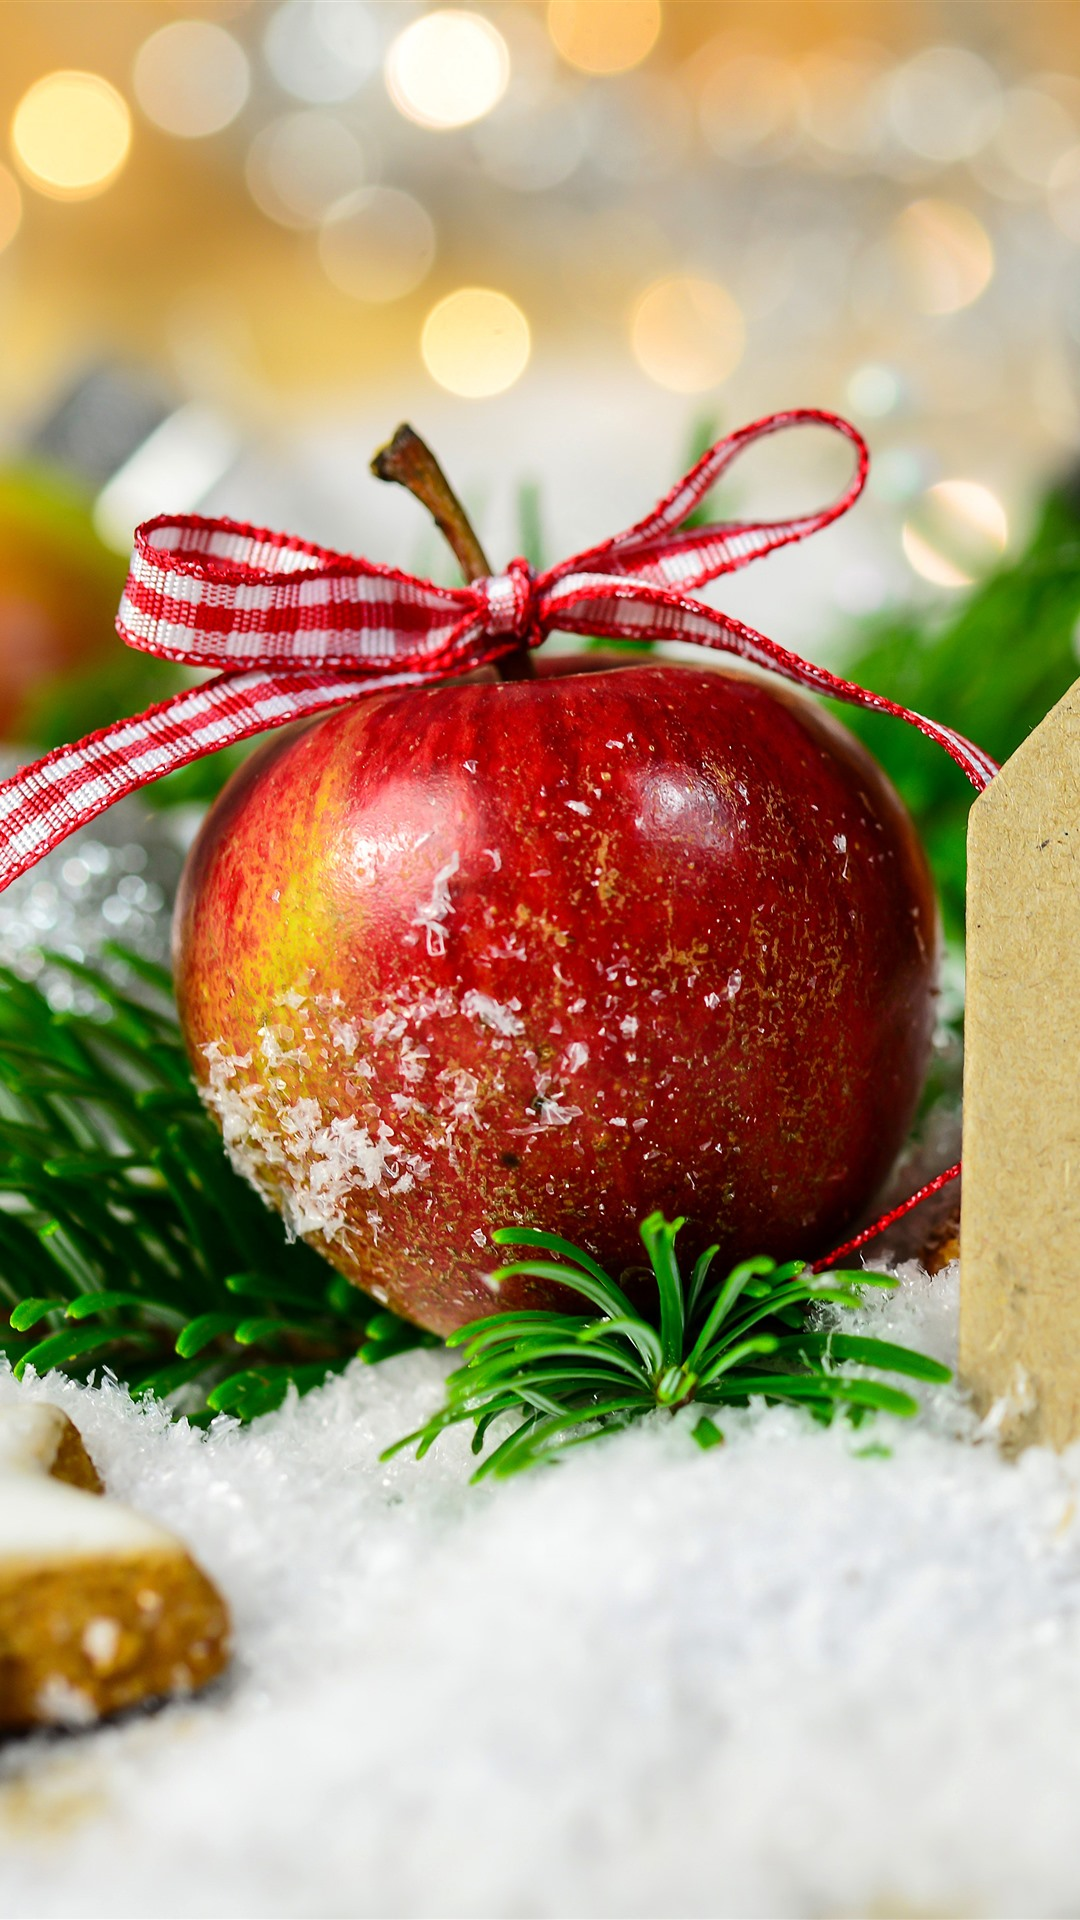 Wallpaper Merry Christmas Red Apple Star Cookies Snow